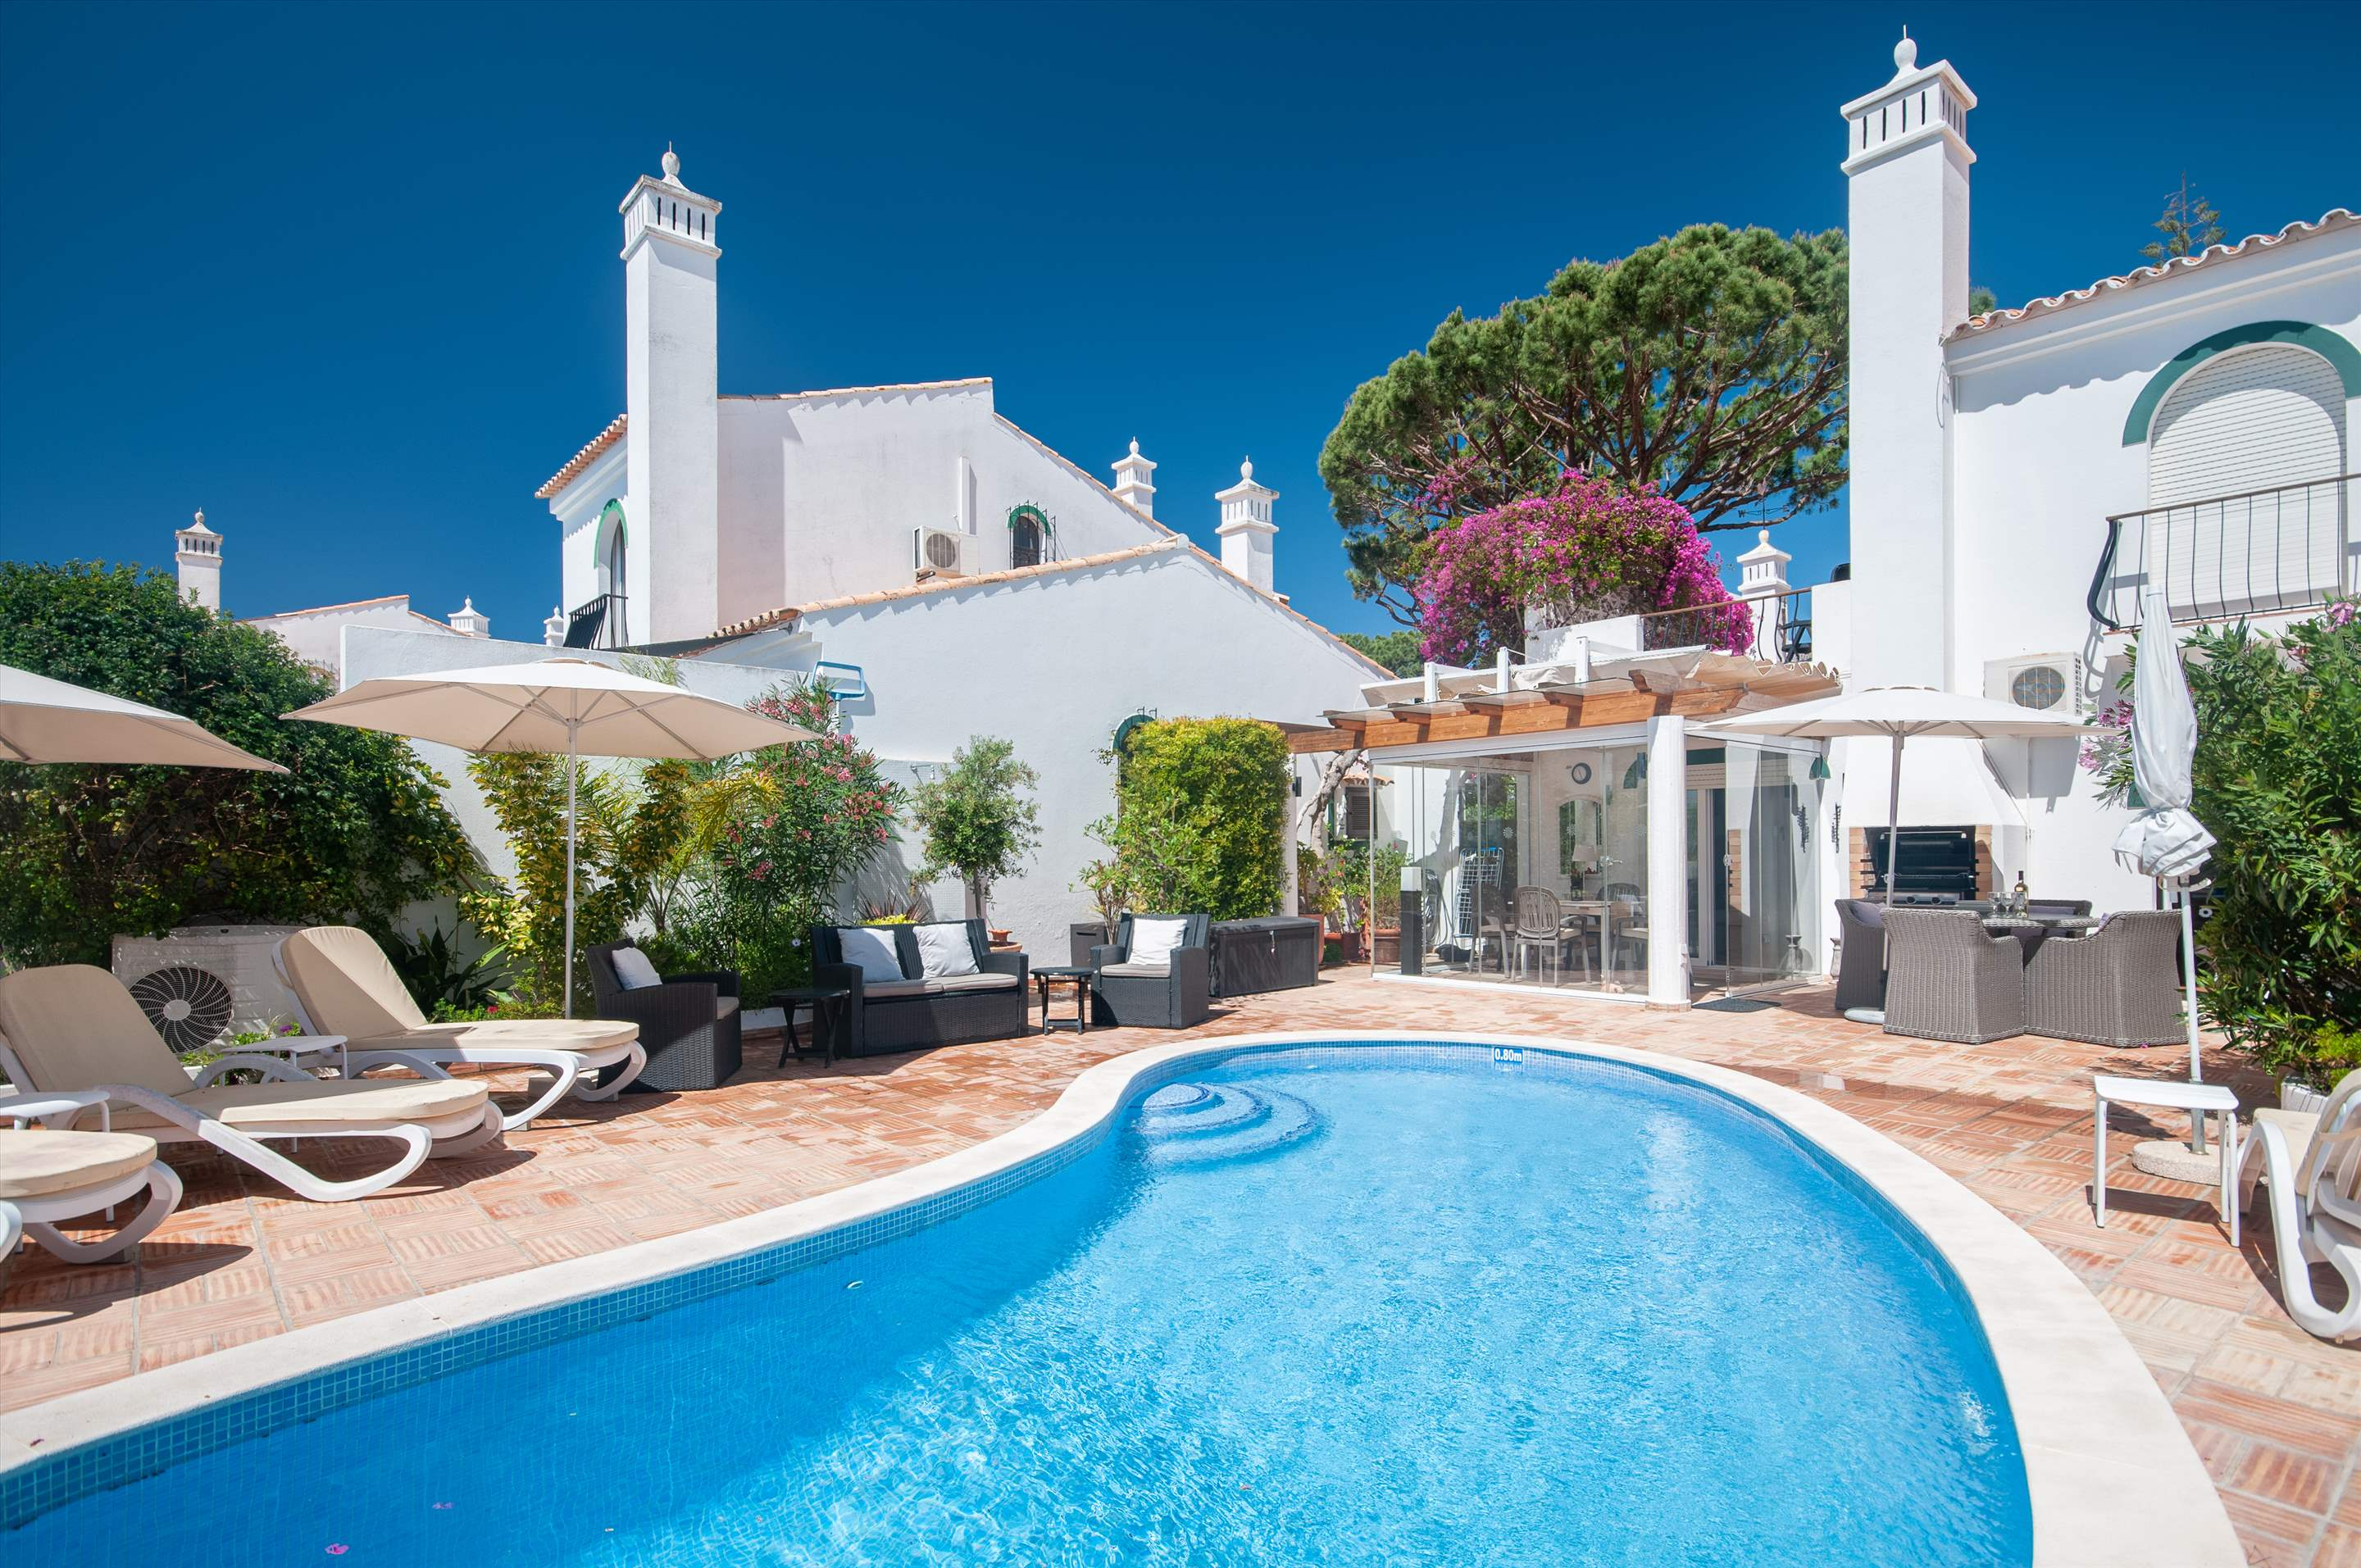 Villa Camarada, 2 bedroom villa in Dunas Douradas, Algarve Photo #1